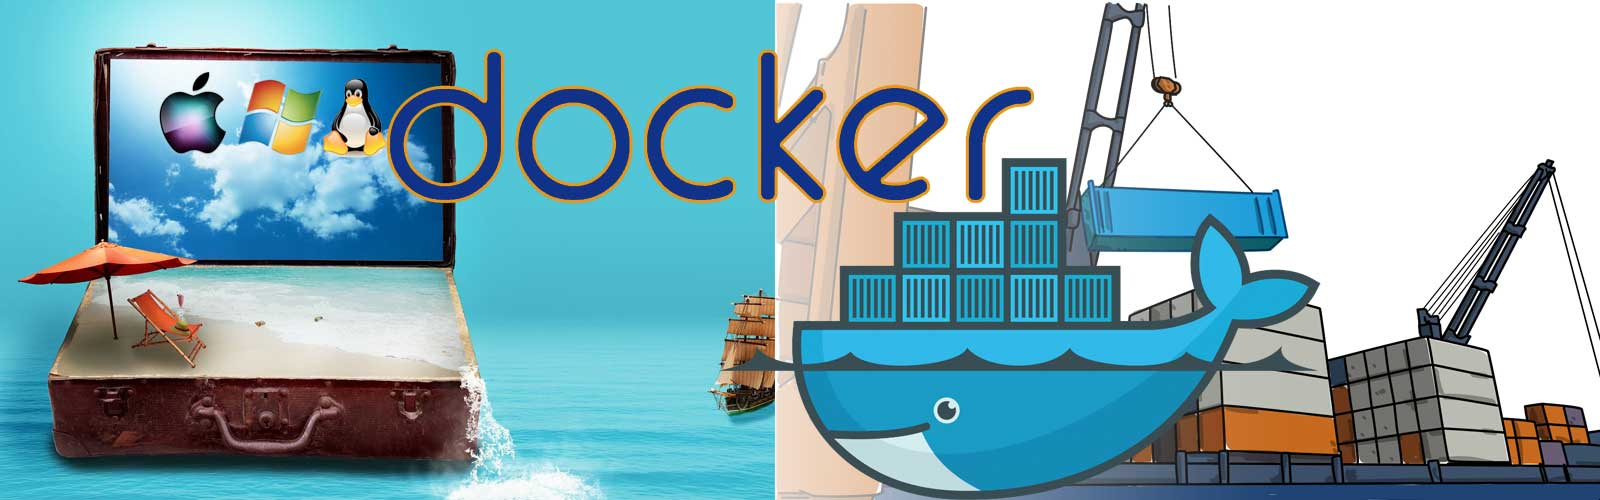 docker logo over surrealist background